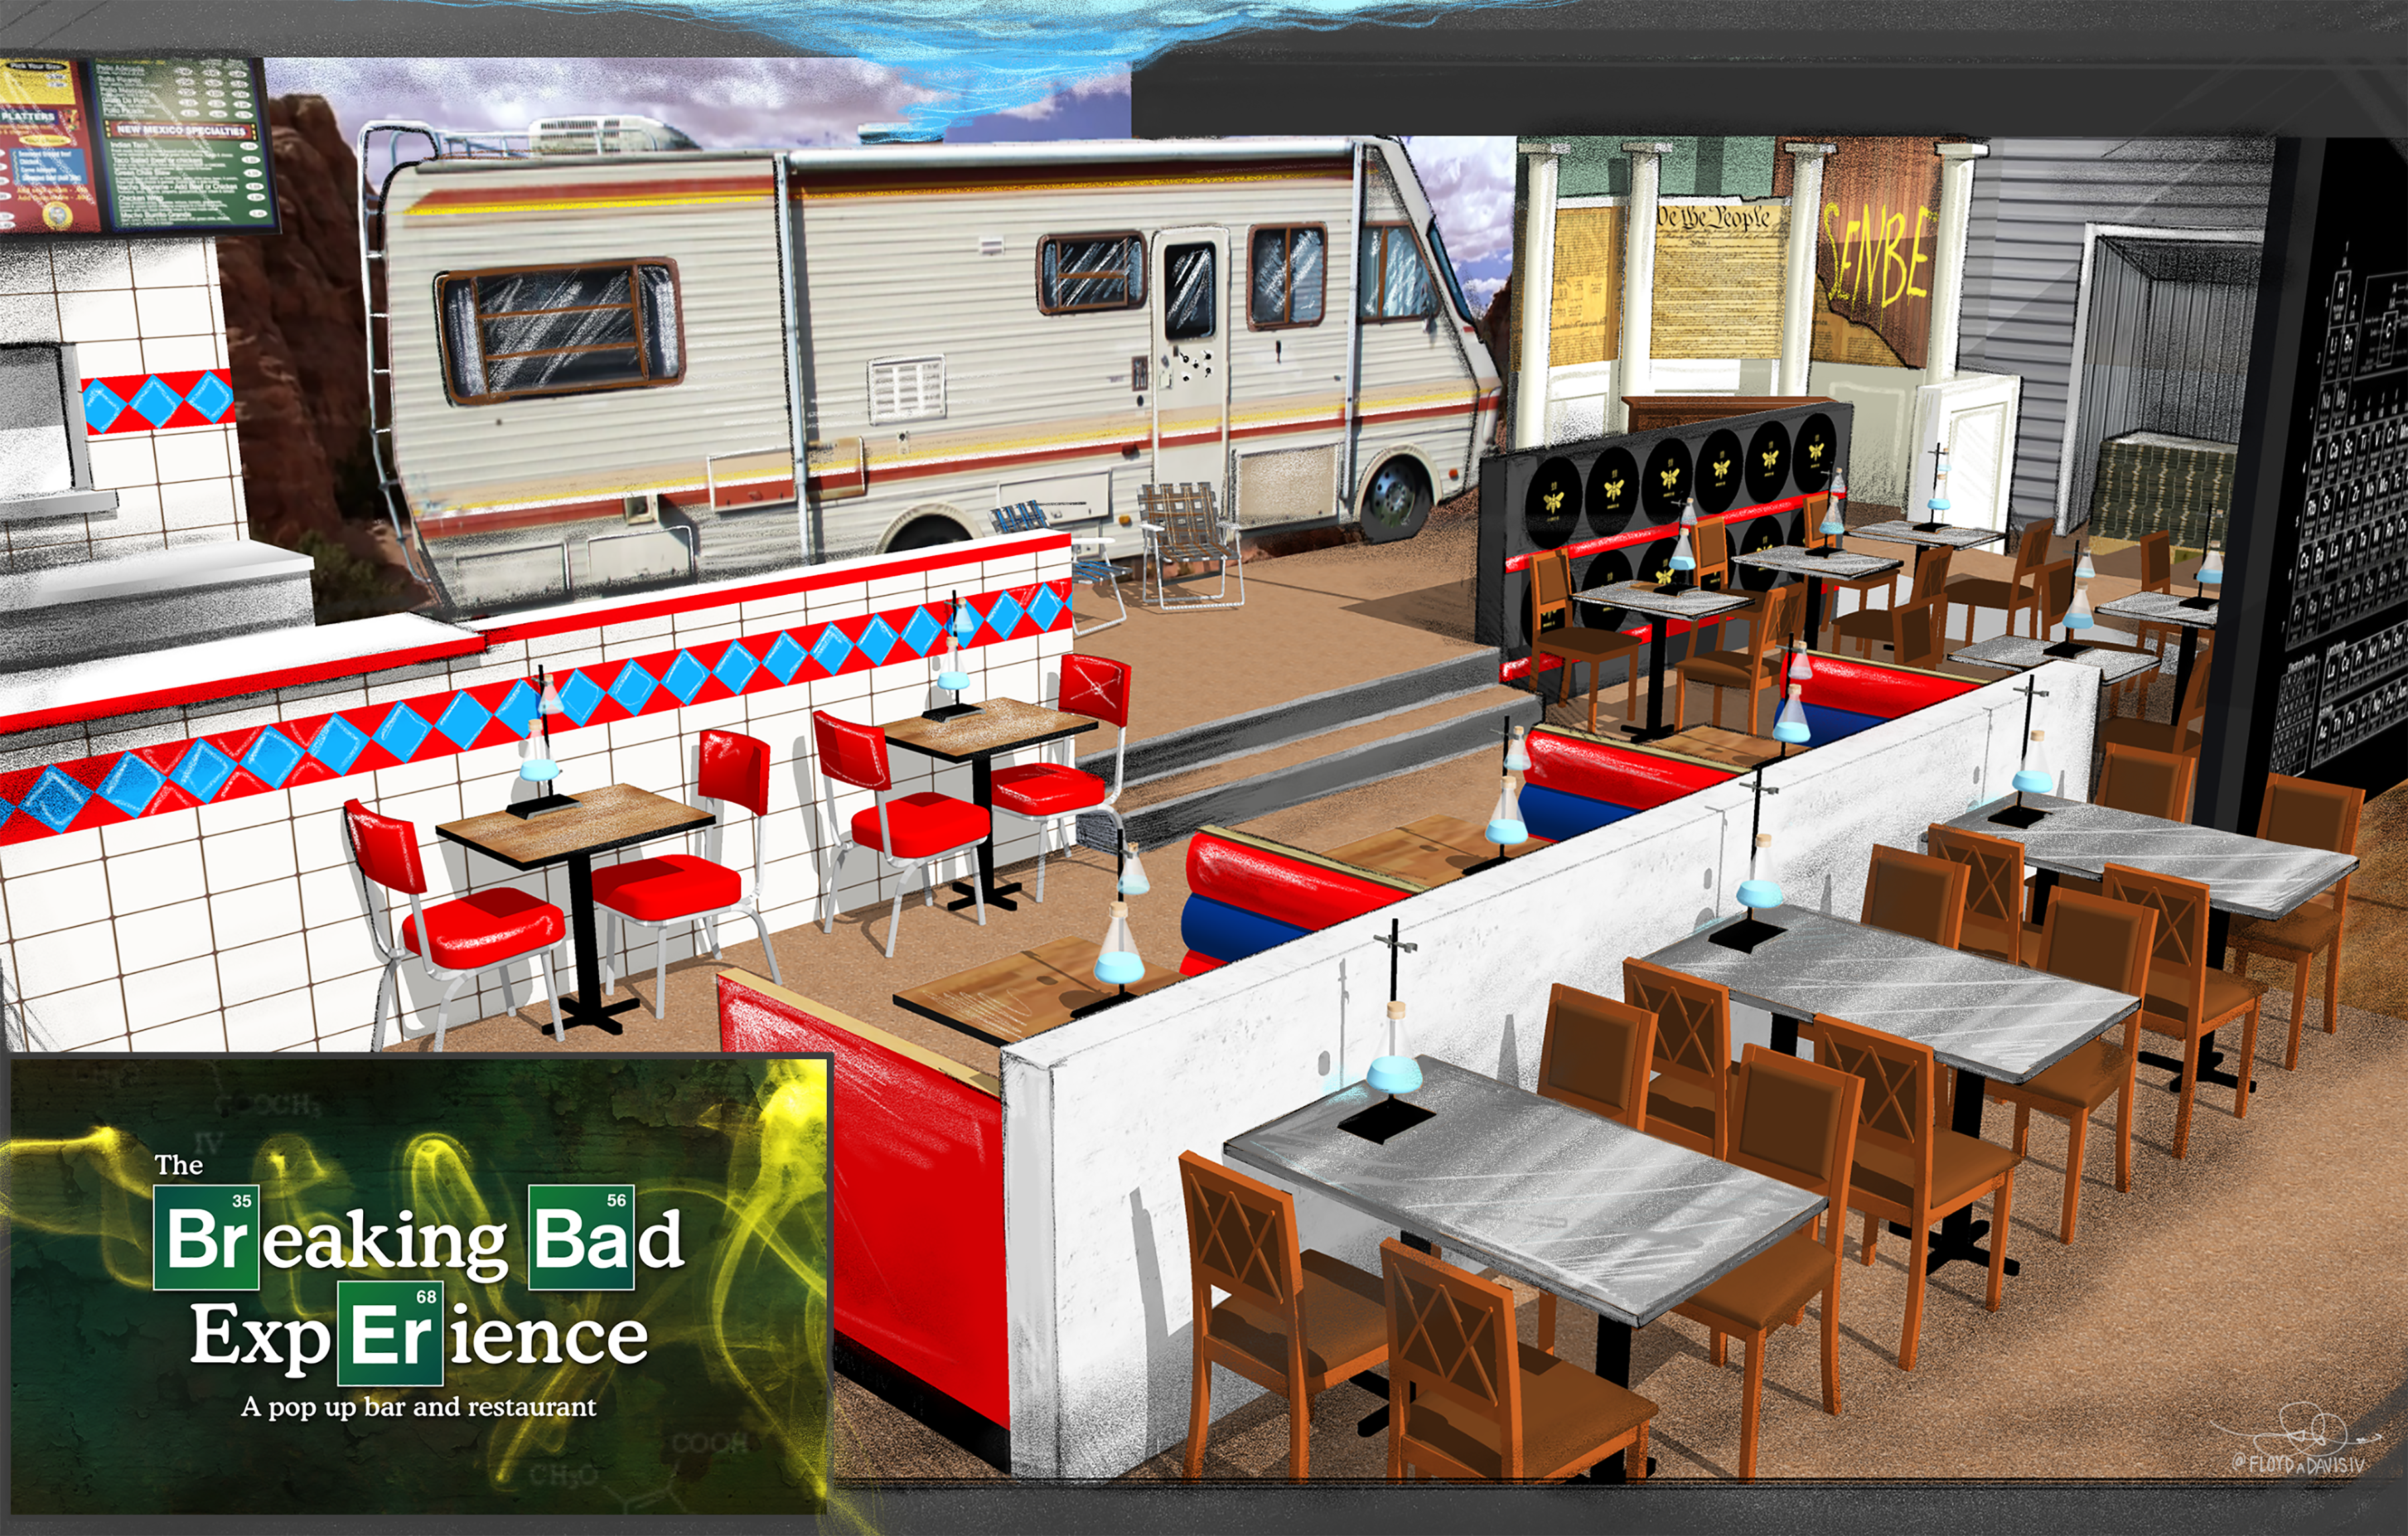 Be the One Who Knocks at the Breaking Bad-Themed Restaurant Pop-Up